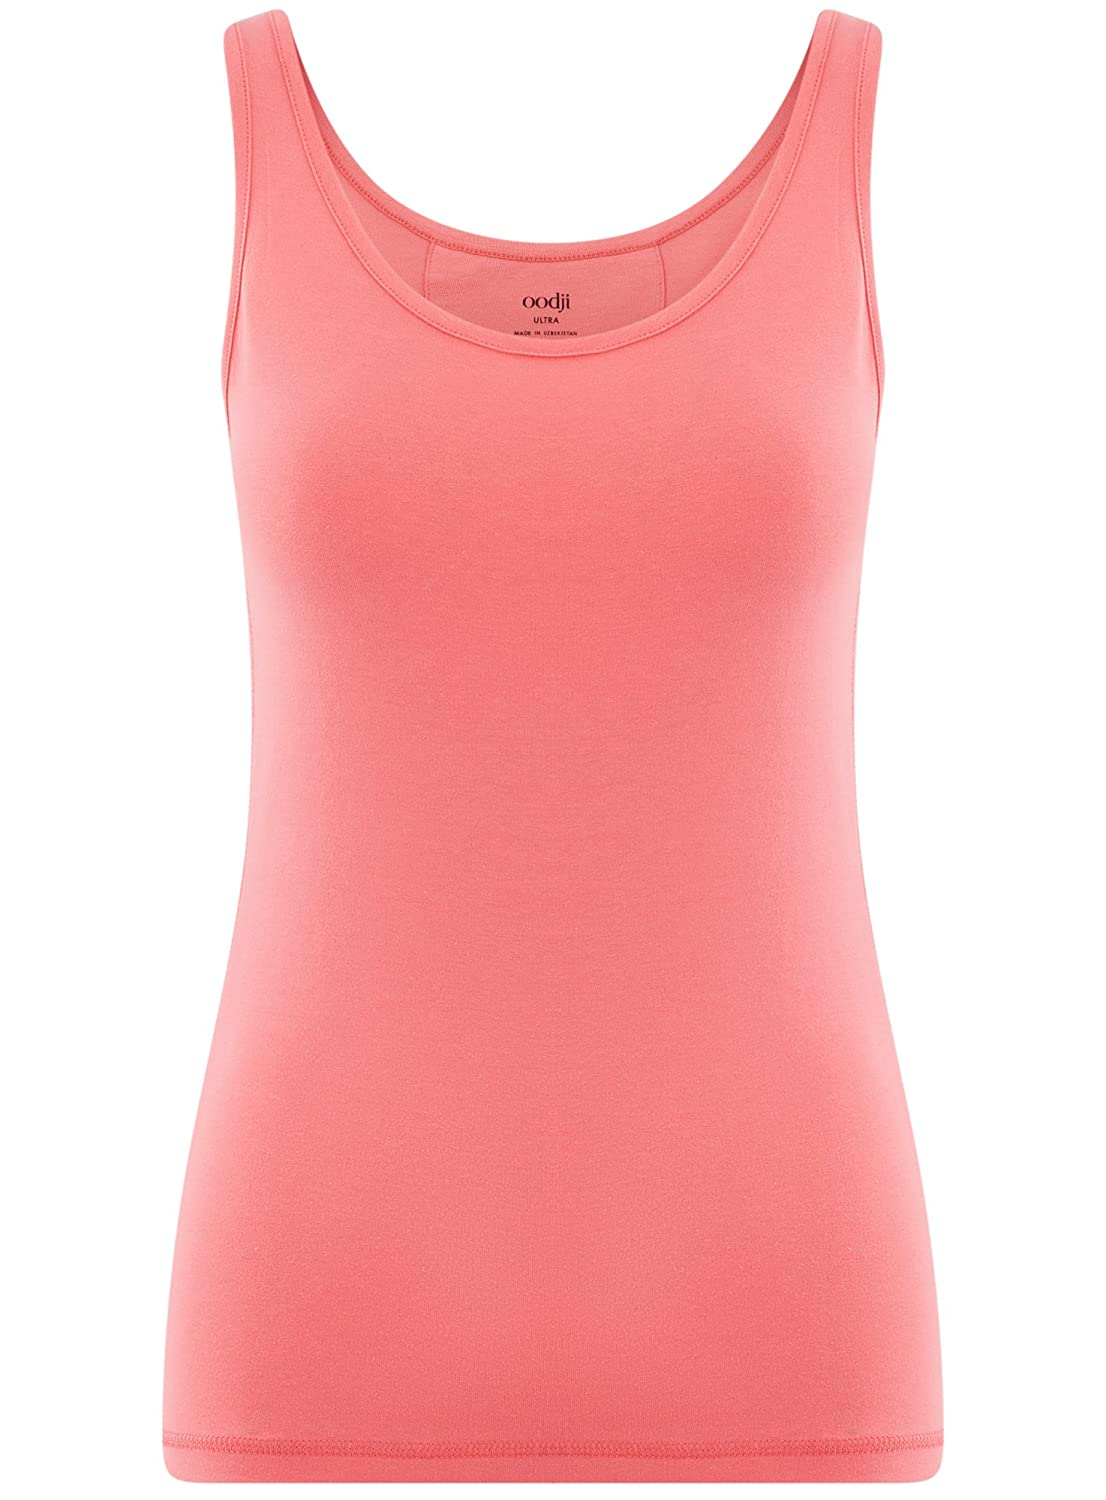 e5f49054b5ce2a oodji Ultra Women s Cotton Tagless Tank Top with Grommets  Amazon.co.uk   Clothing